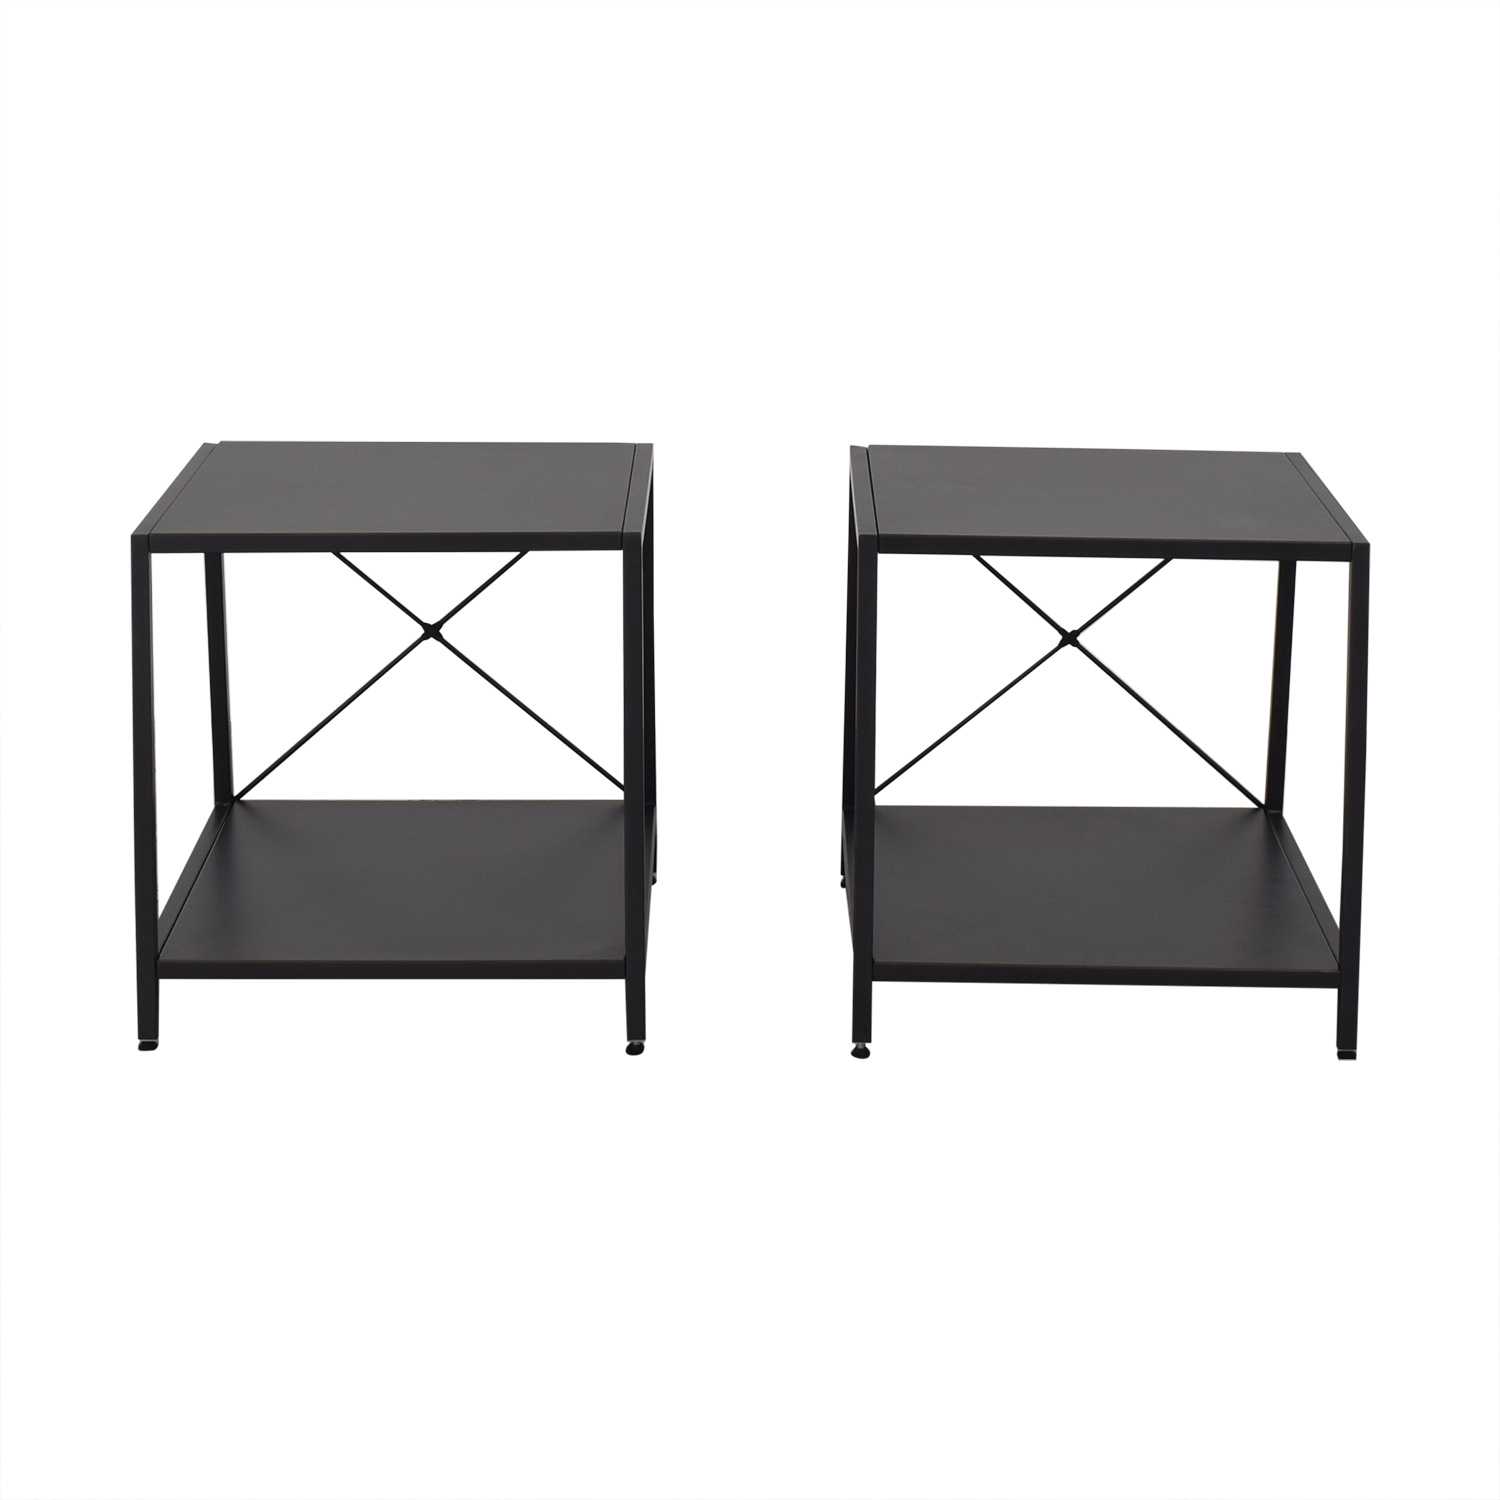 CB2 CB2 Nightstands End Tables